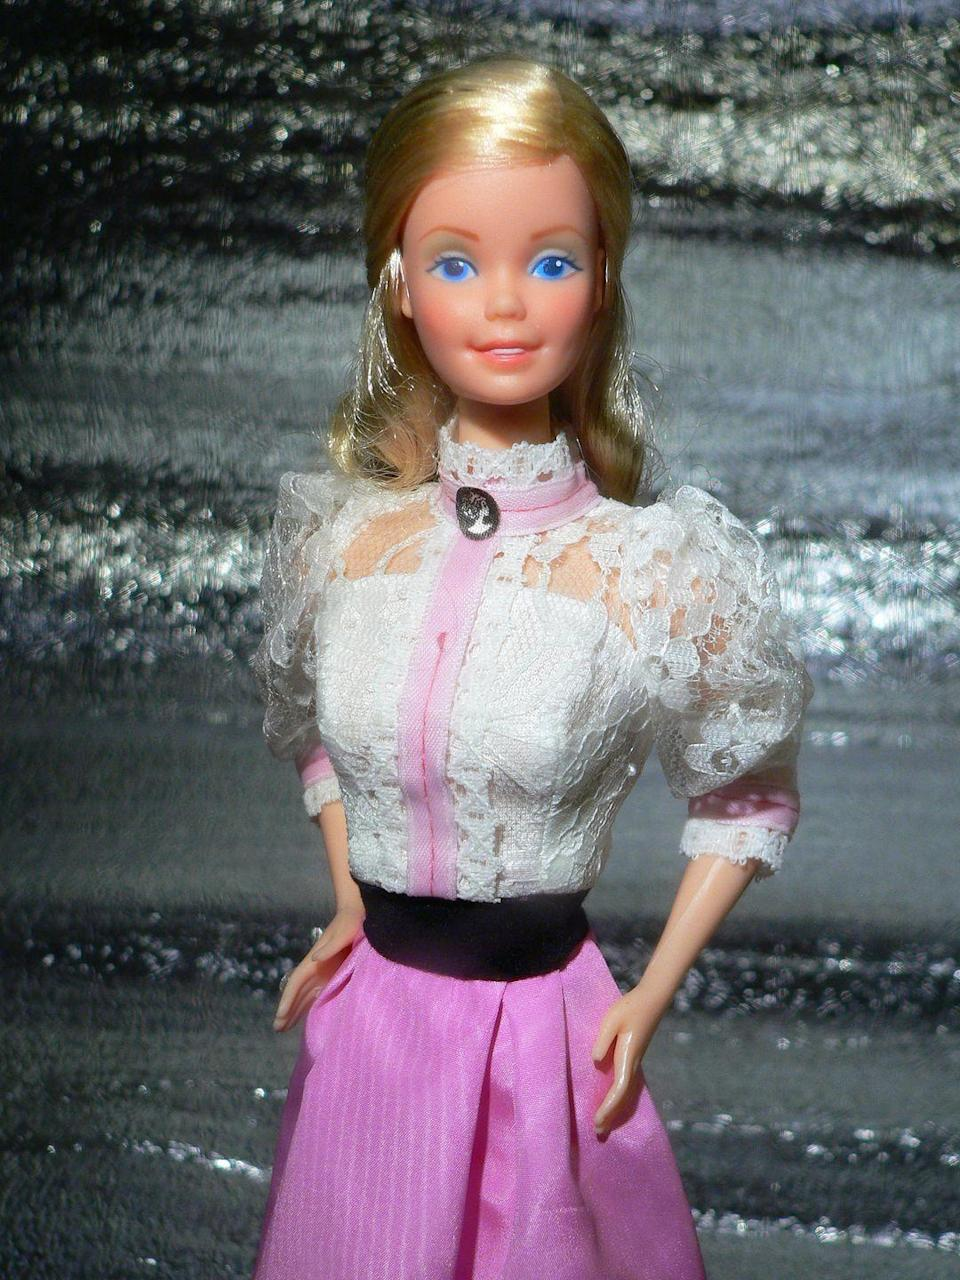 "<p>In contrast, 1982's Angel Face Barbie has a much more subtle look, with a high-necked lace blouse accented with a cameo. </p><p><a href=""https://flic.kr/p/B1EnQZ"" rel=""nofollow noopener"" target=""_blank"" data-ylk=""slk:Flickr photo by Julius Seelbach"" class=""link rapid-noclick-resp""><em>Flickr photo by Julius Seelbach</em></a></p>"